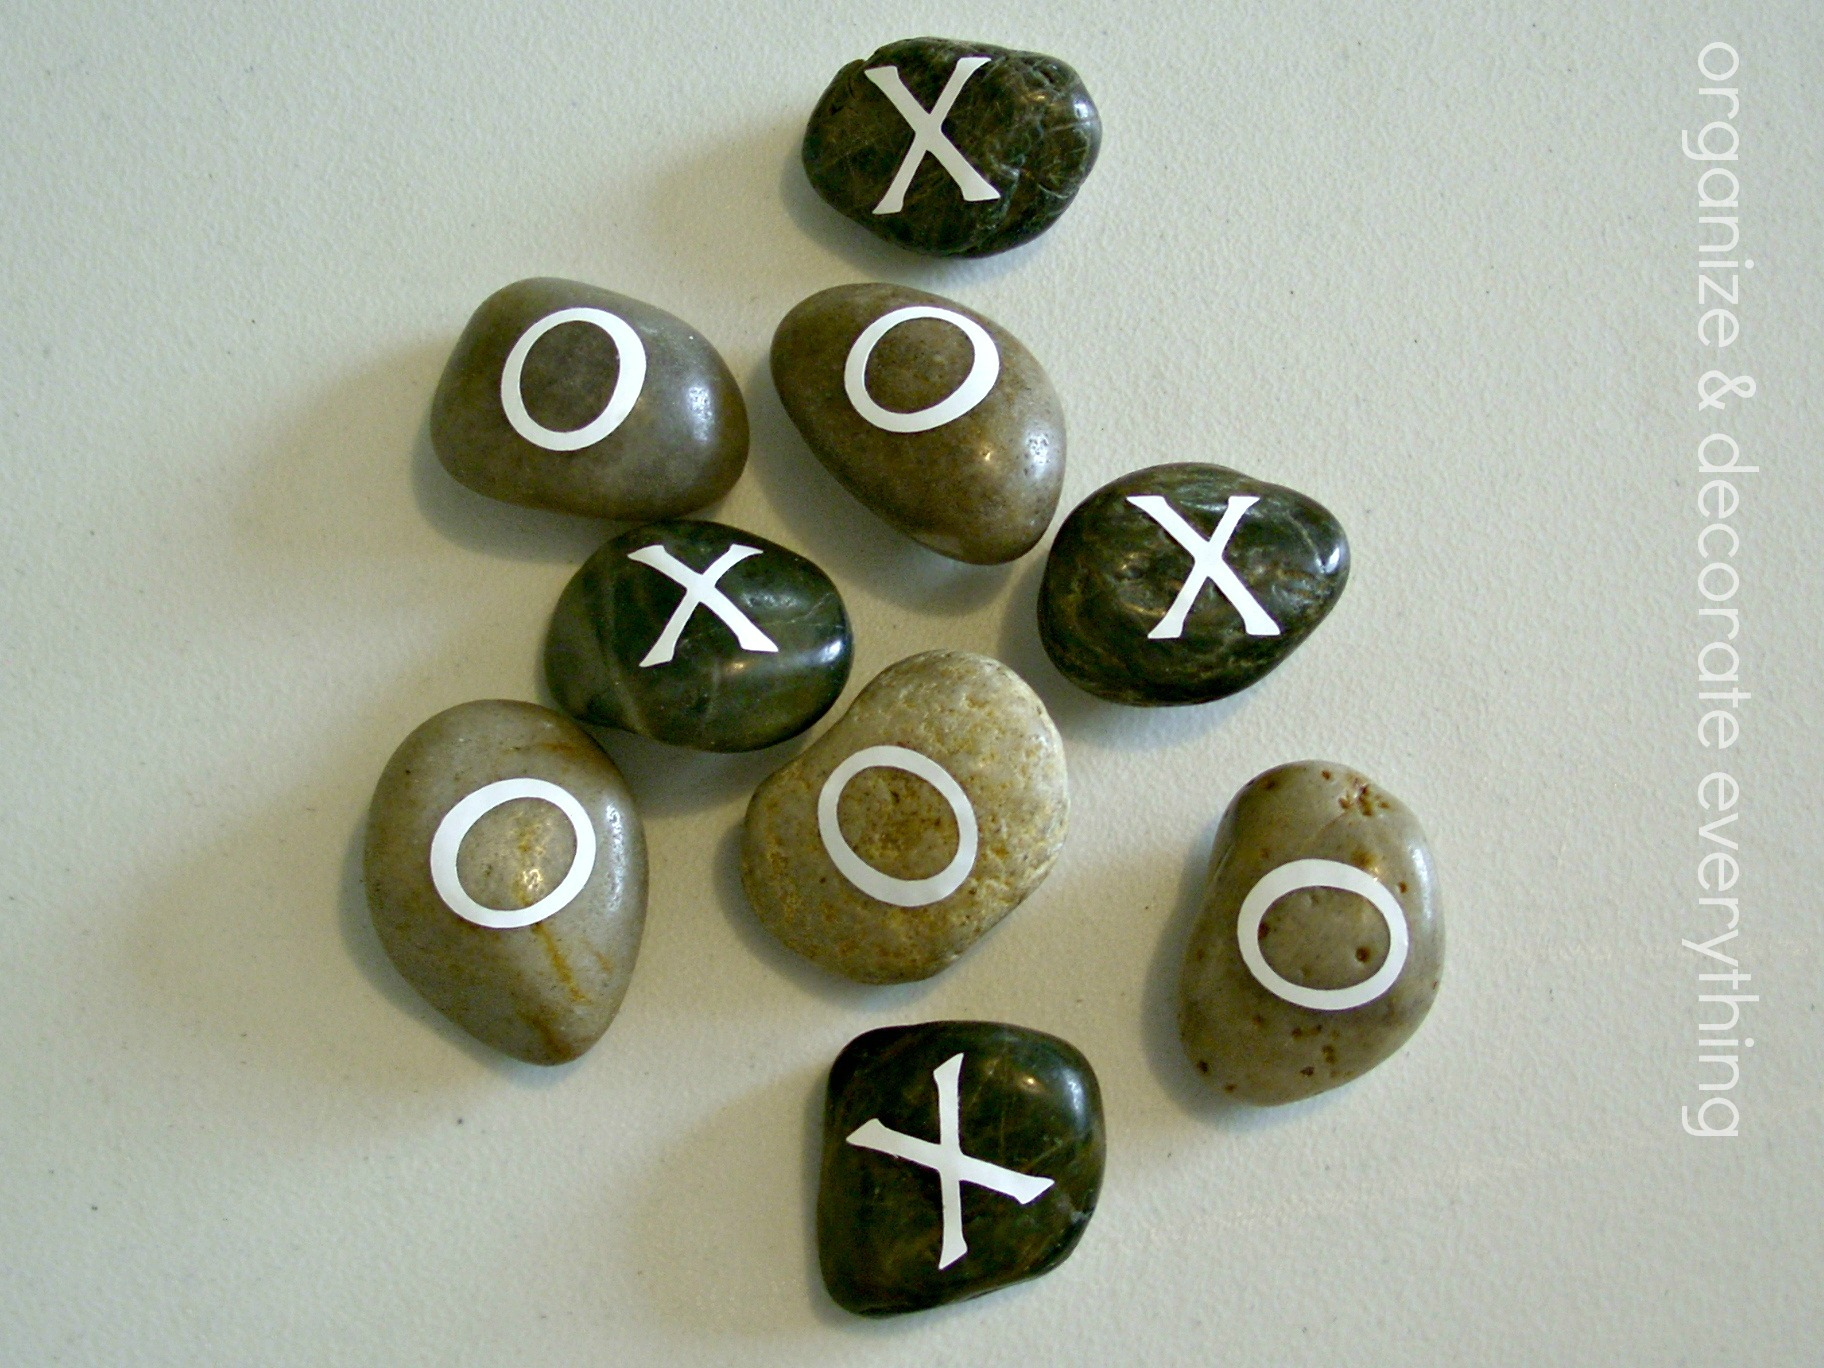 tic tac toe game 3.1